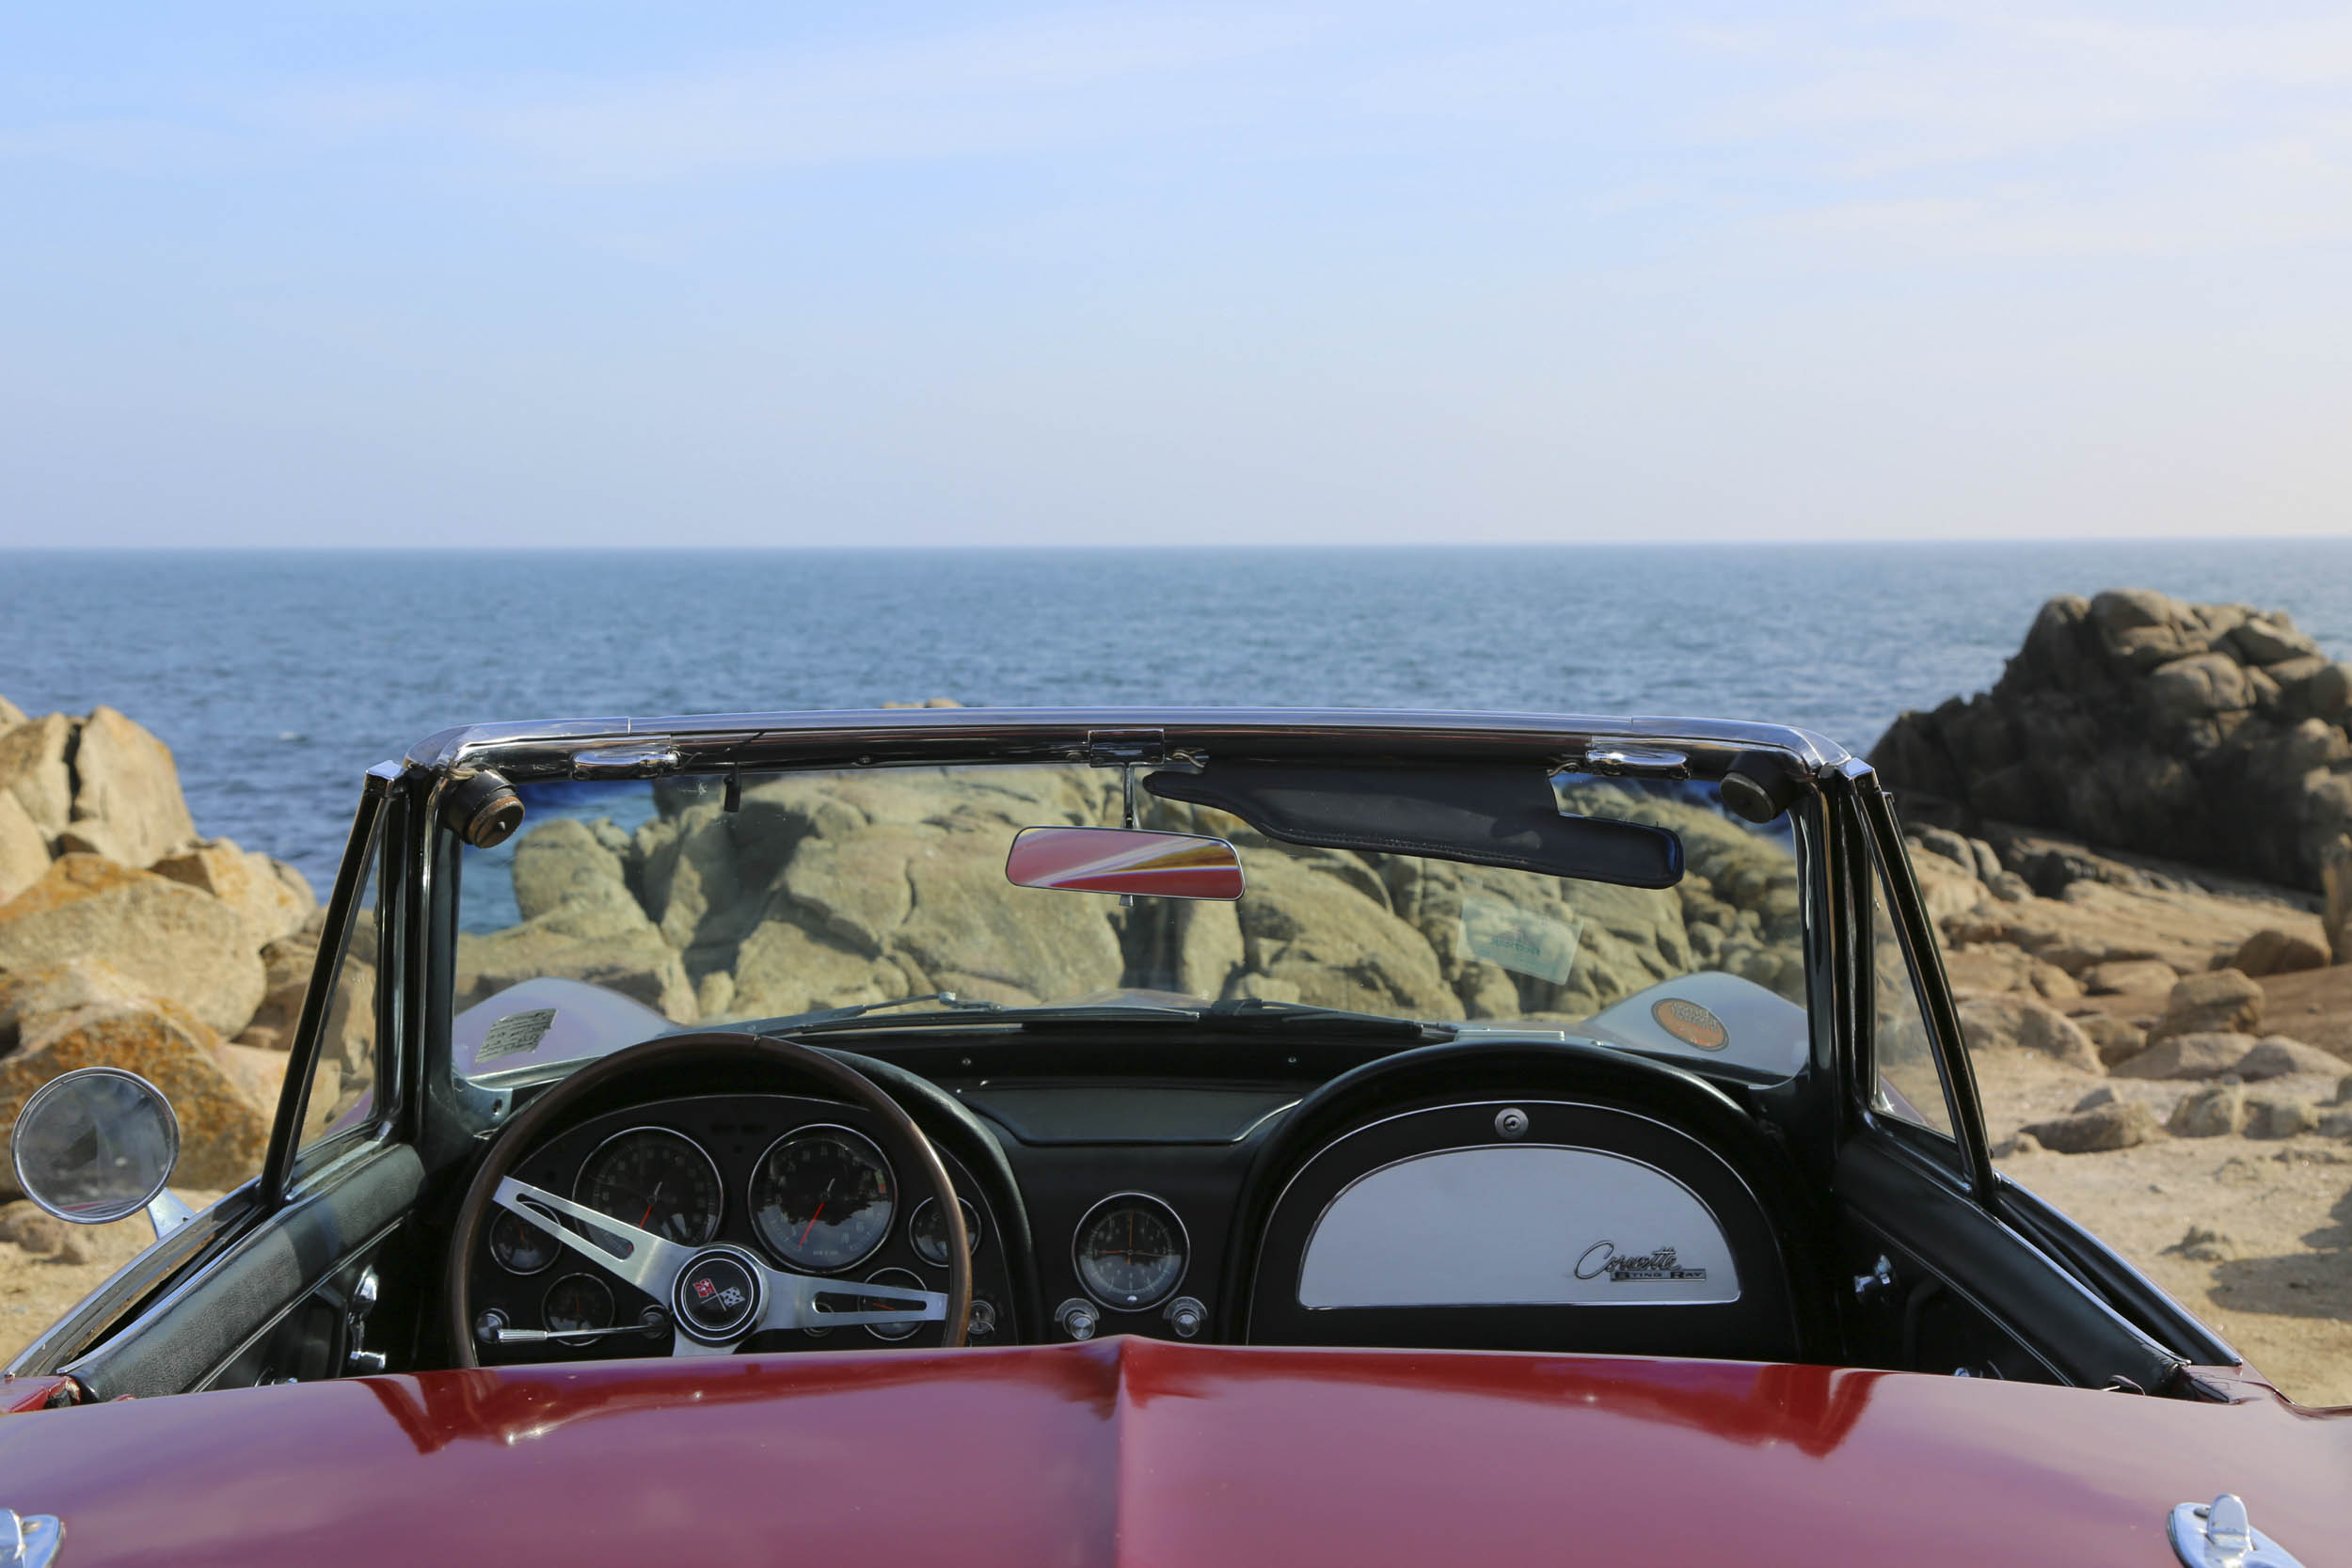 1965 Chevrolet Corvette view out the windshield